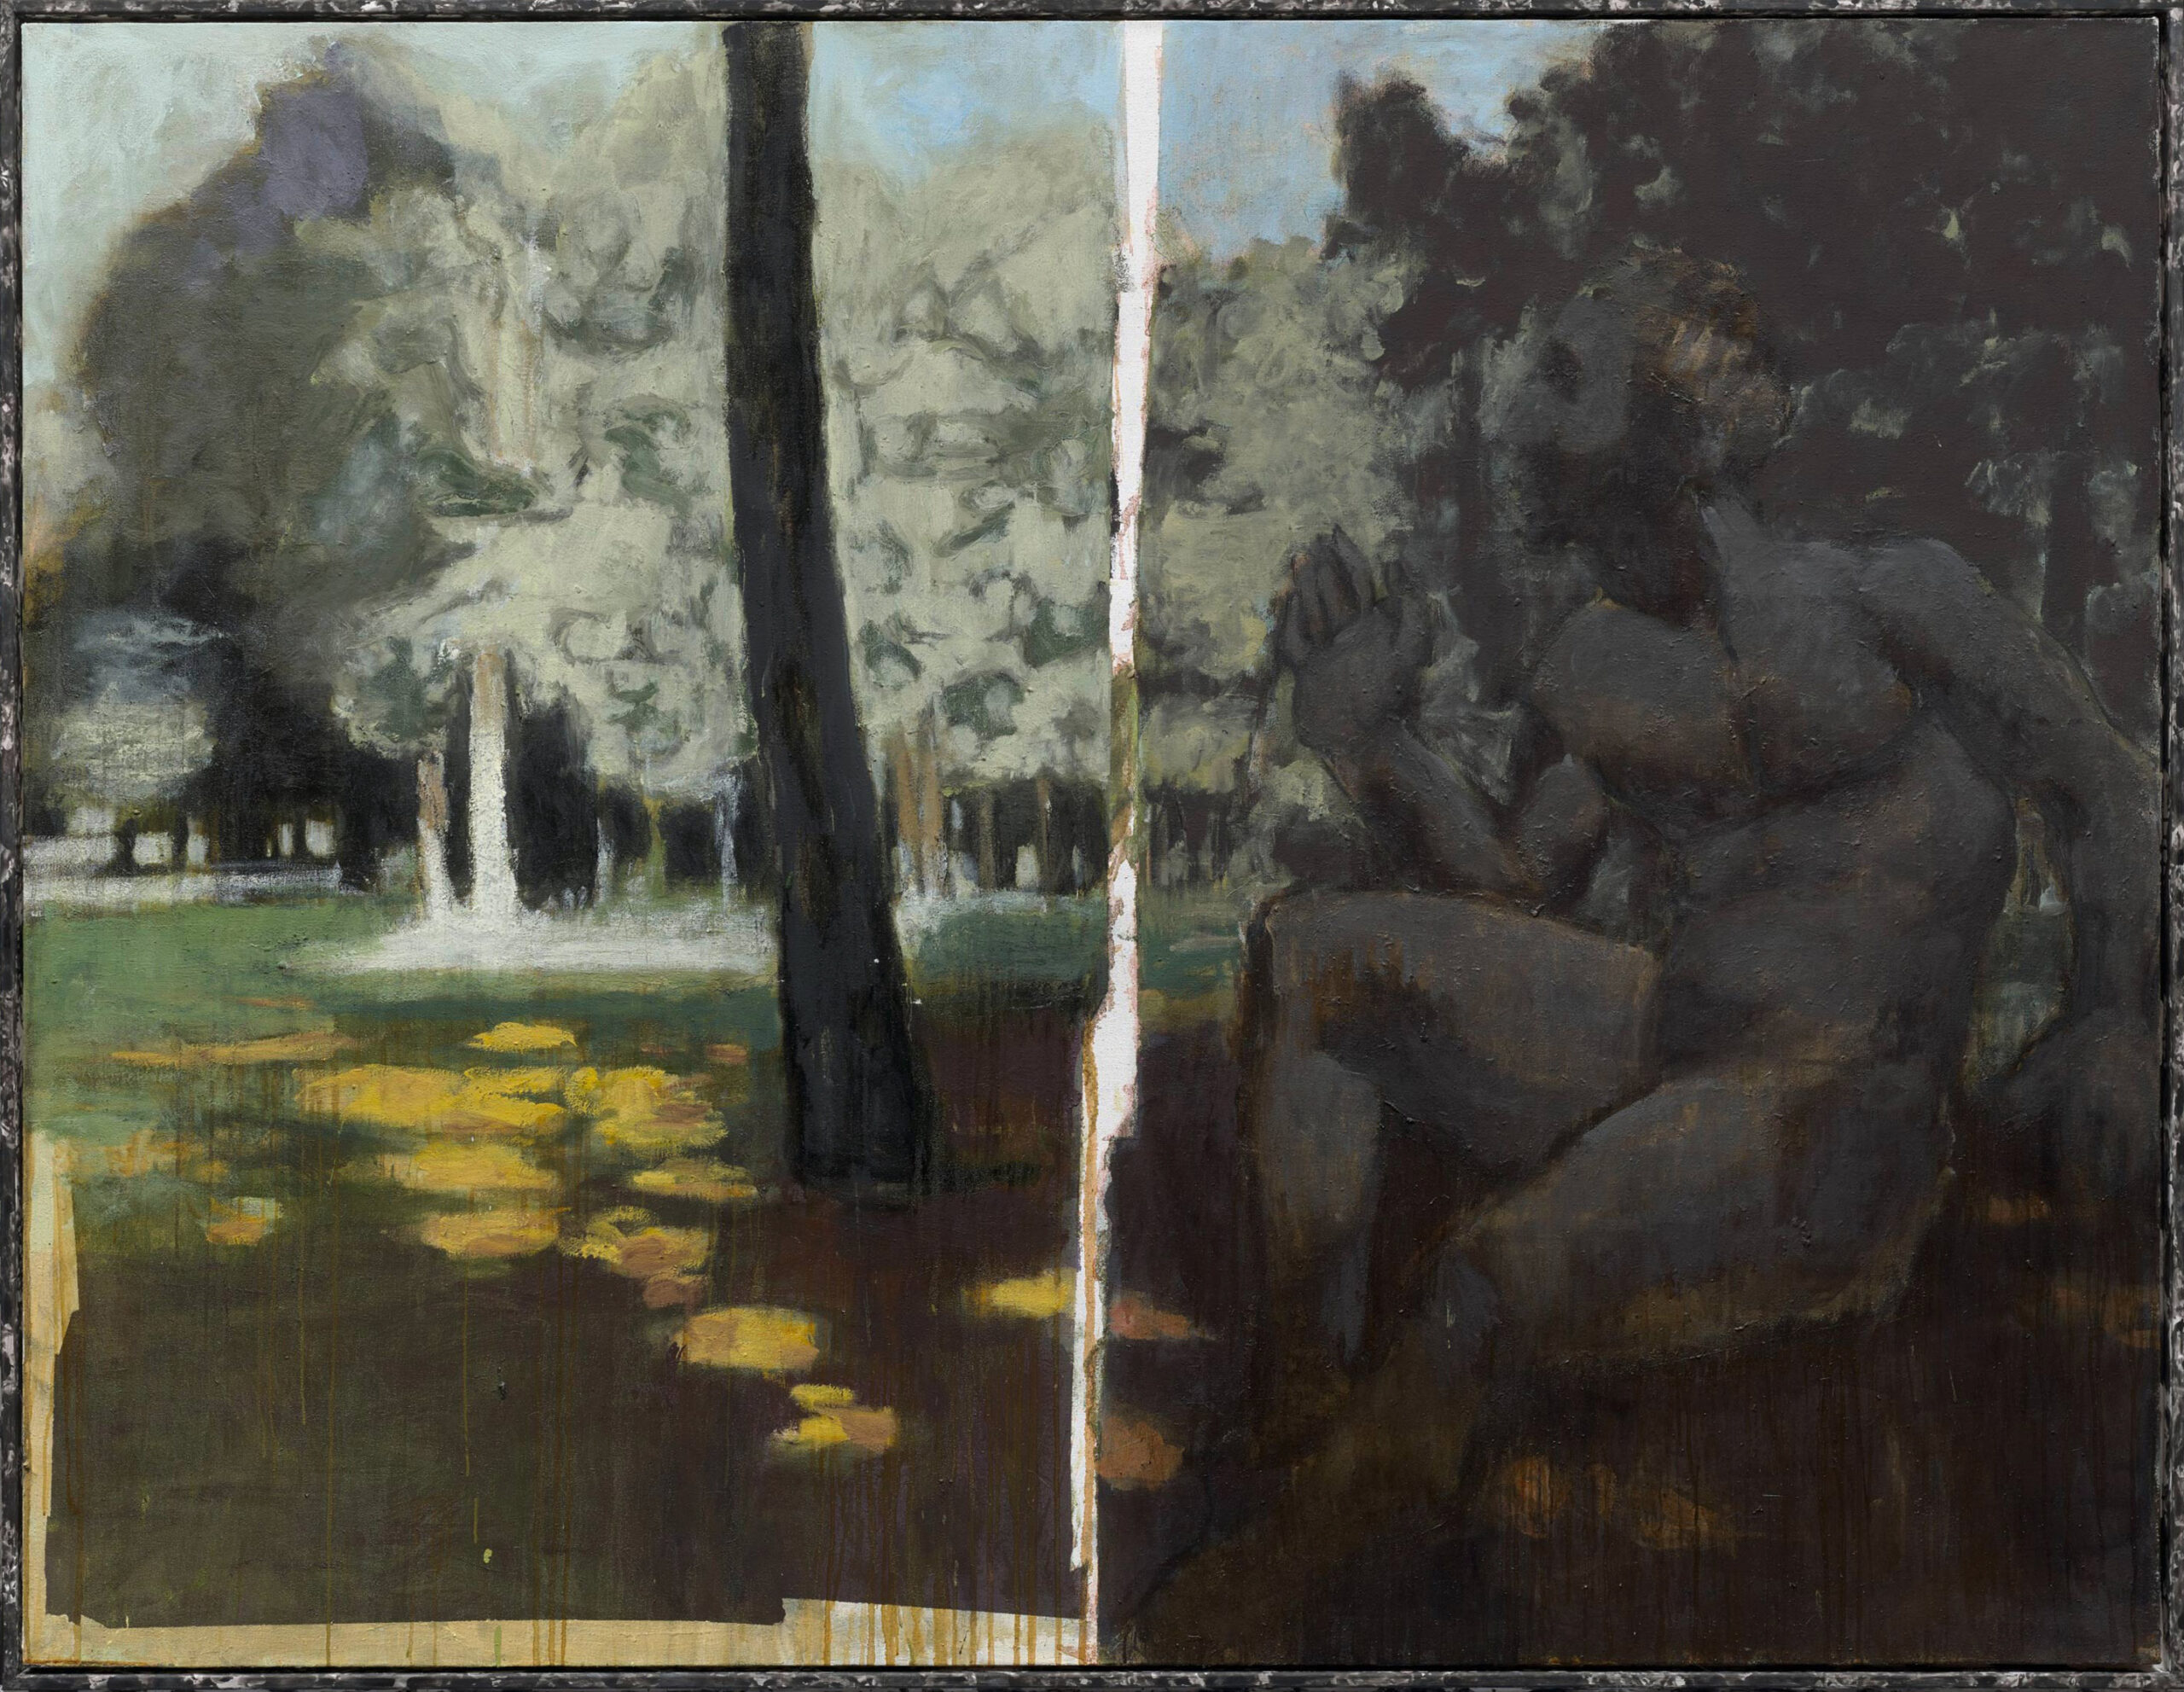 MARKUS LÜPERTZ – RECENT PAINTINGS